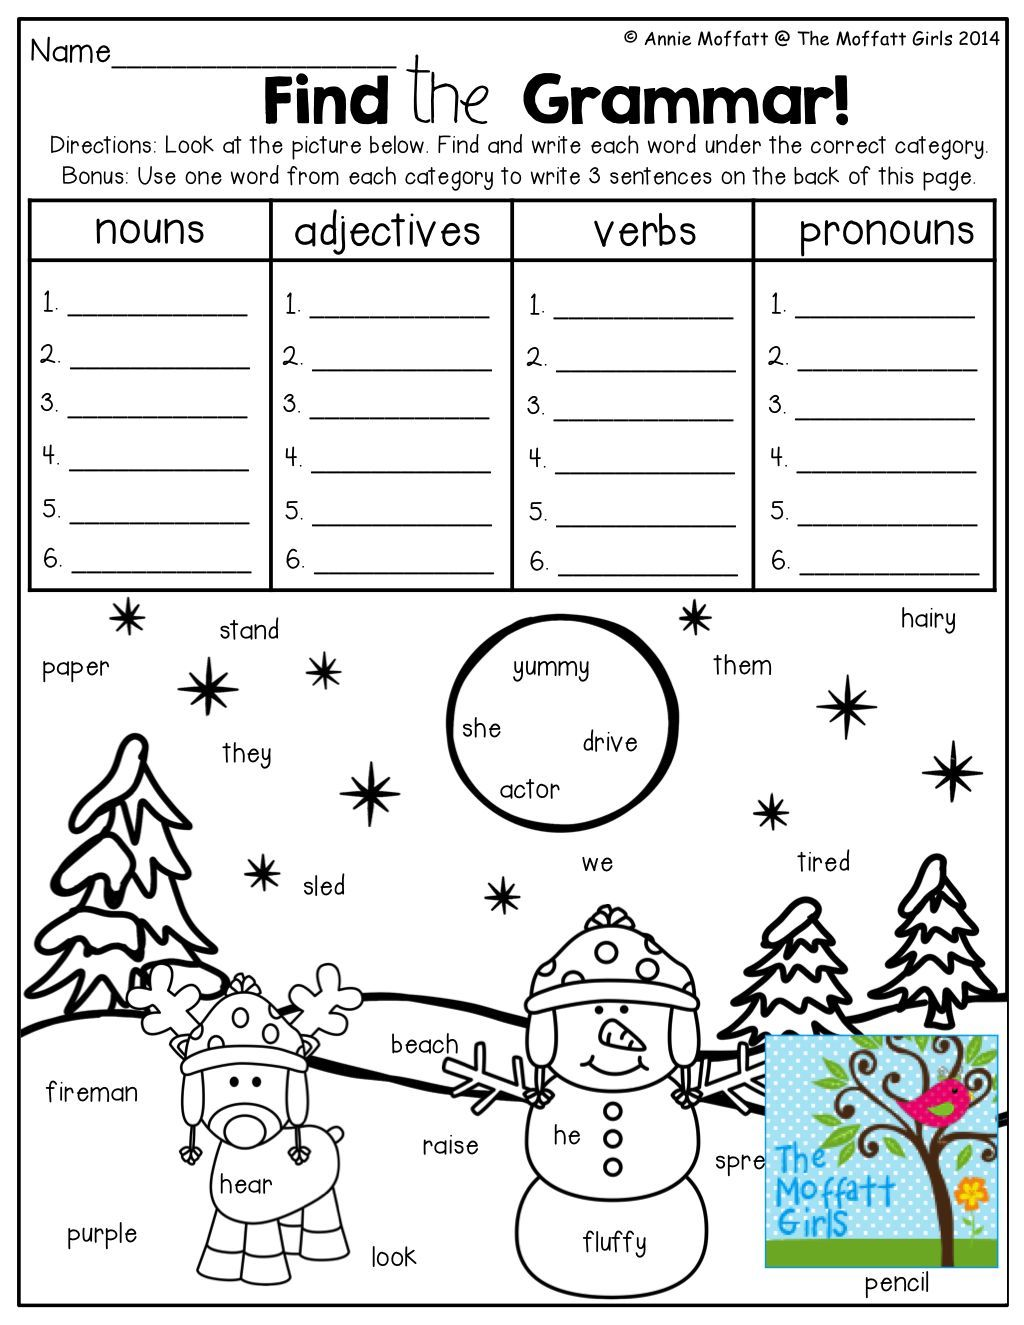 Search, find and write, nouns, adjectives, verbs and pronouns! TONS of fun  and effective printables!